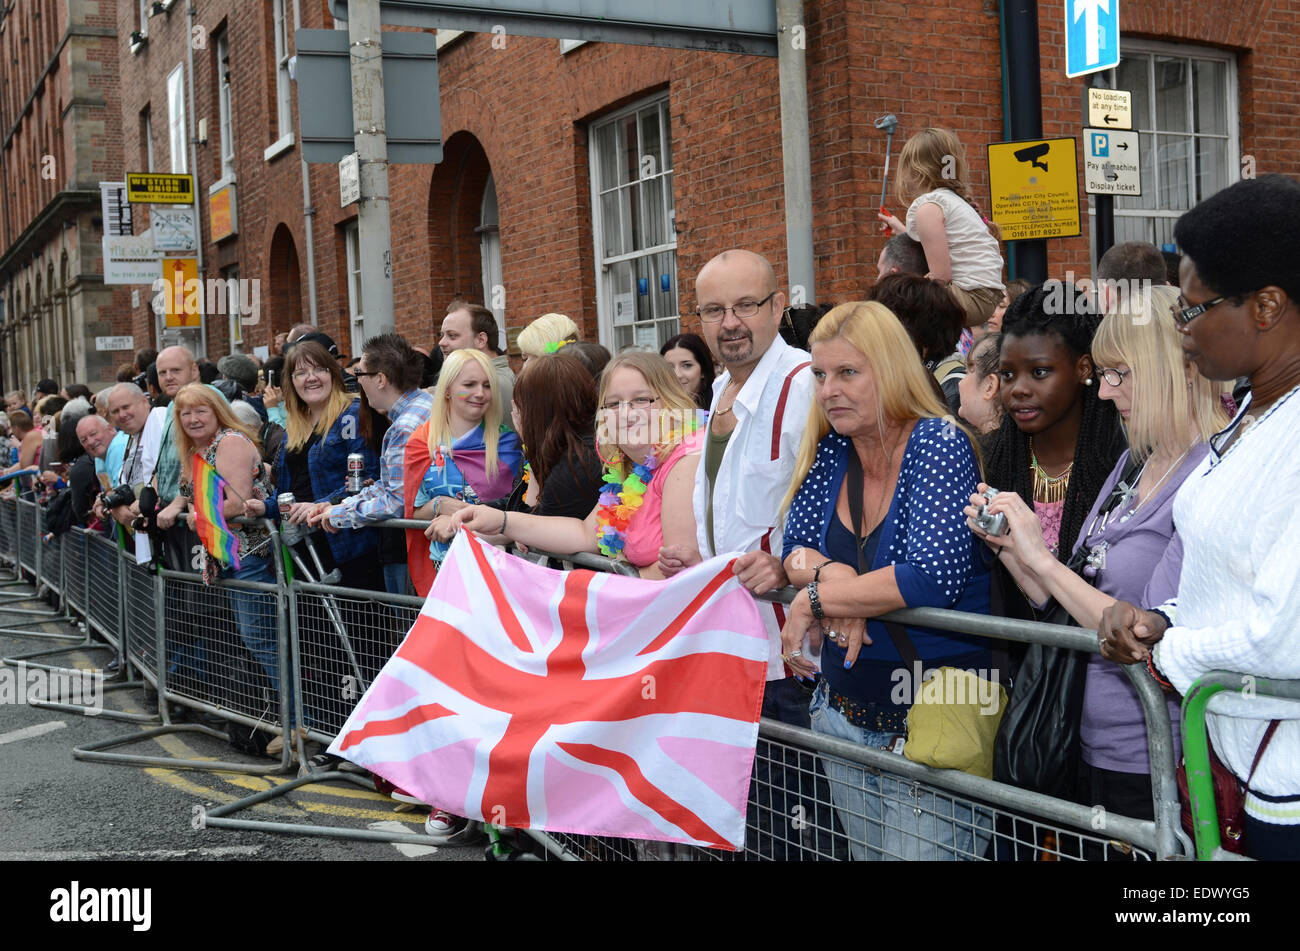 Onlookers hold a pink gay Union Flag at the Manchester Gay Pride Parade. - Stock Image